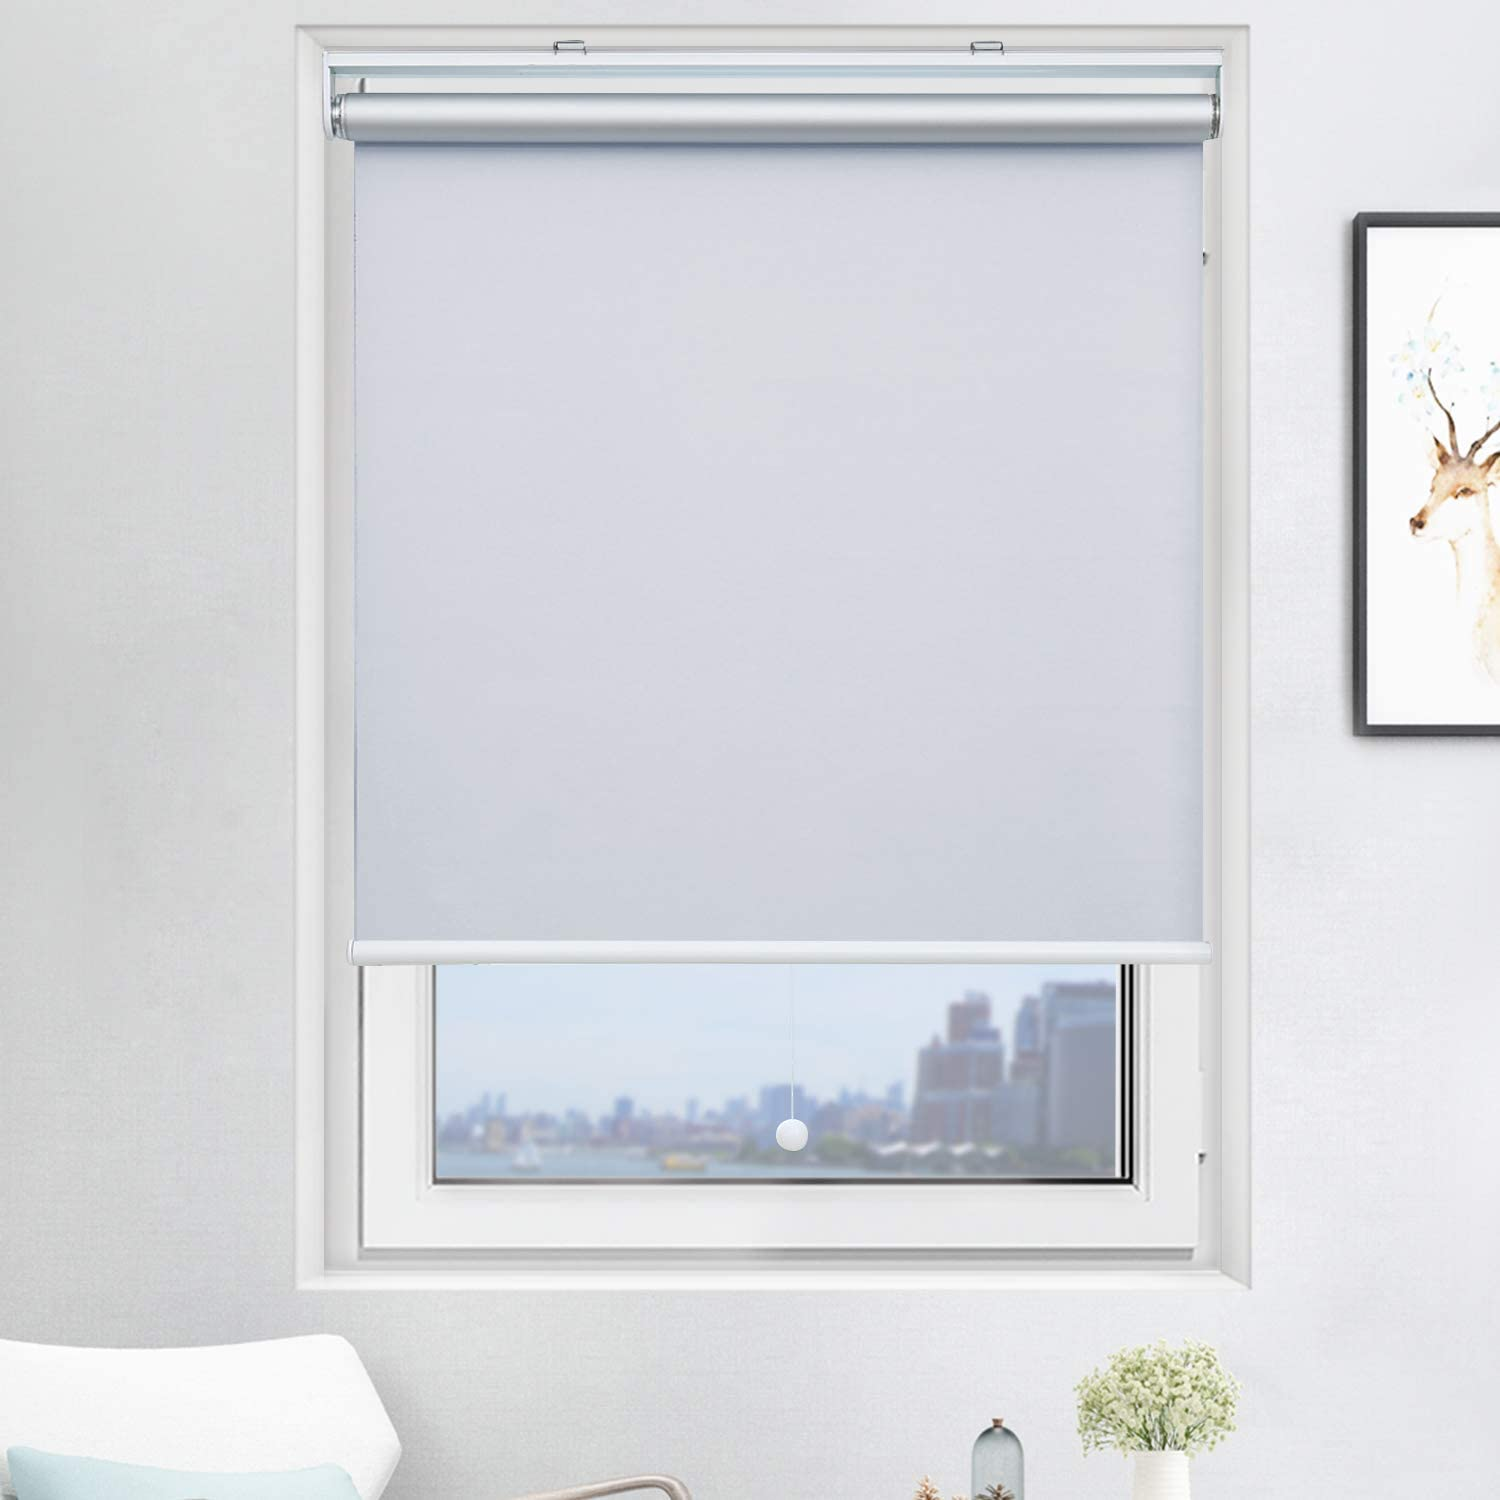 Acholo Blackout Roller Shades Cordless Window Blinds (White, 23 x 72 Inch) and Room Darkening Shades for Home & Windows